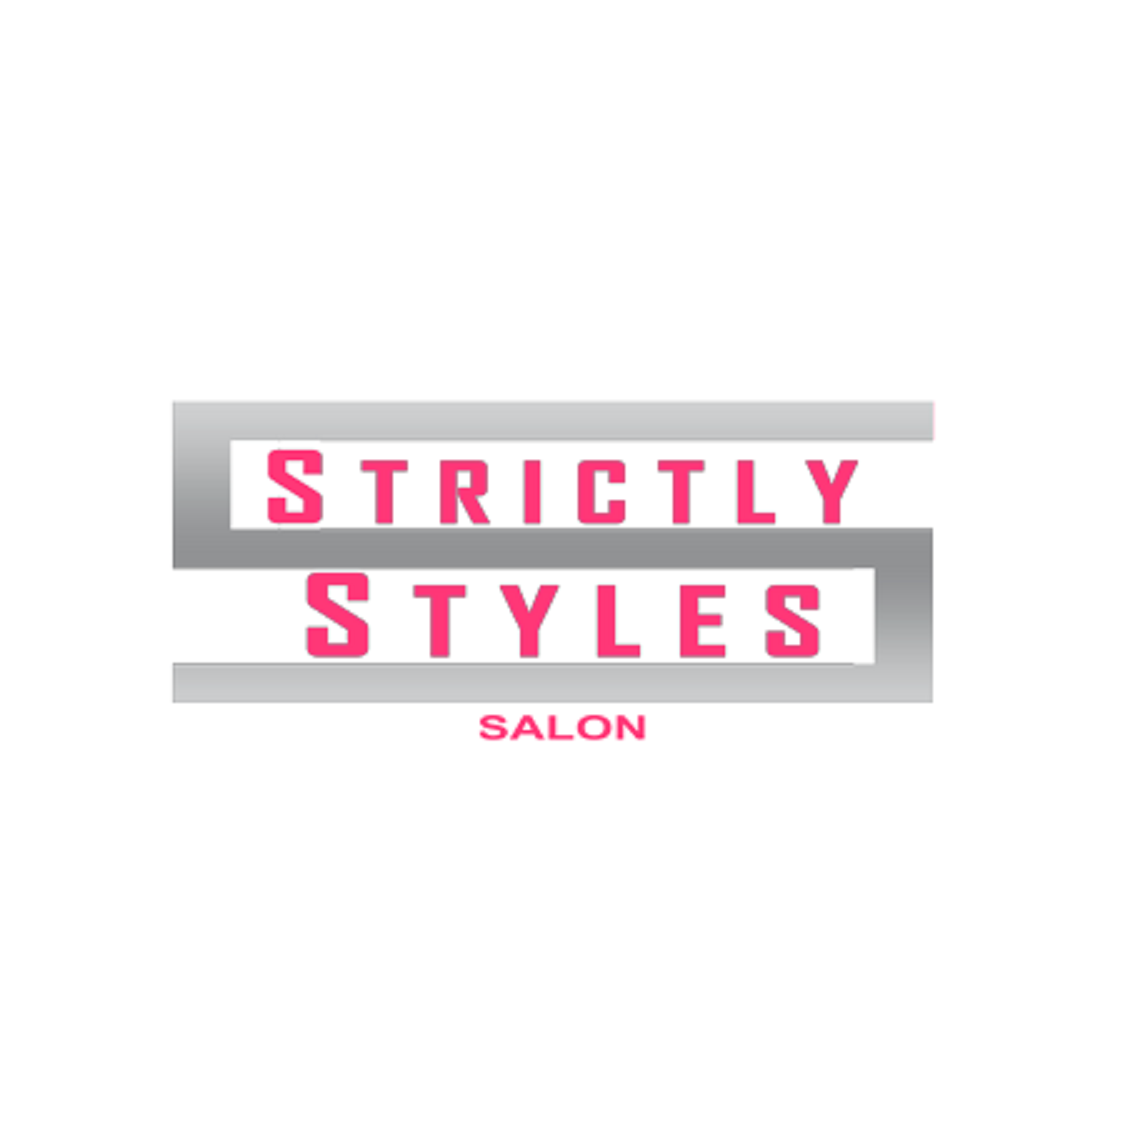 Strictly Styles image 10